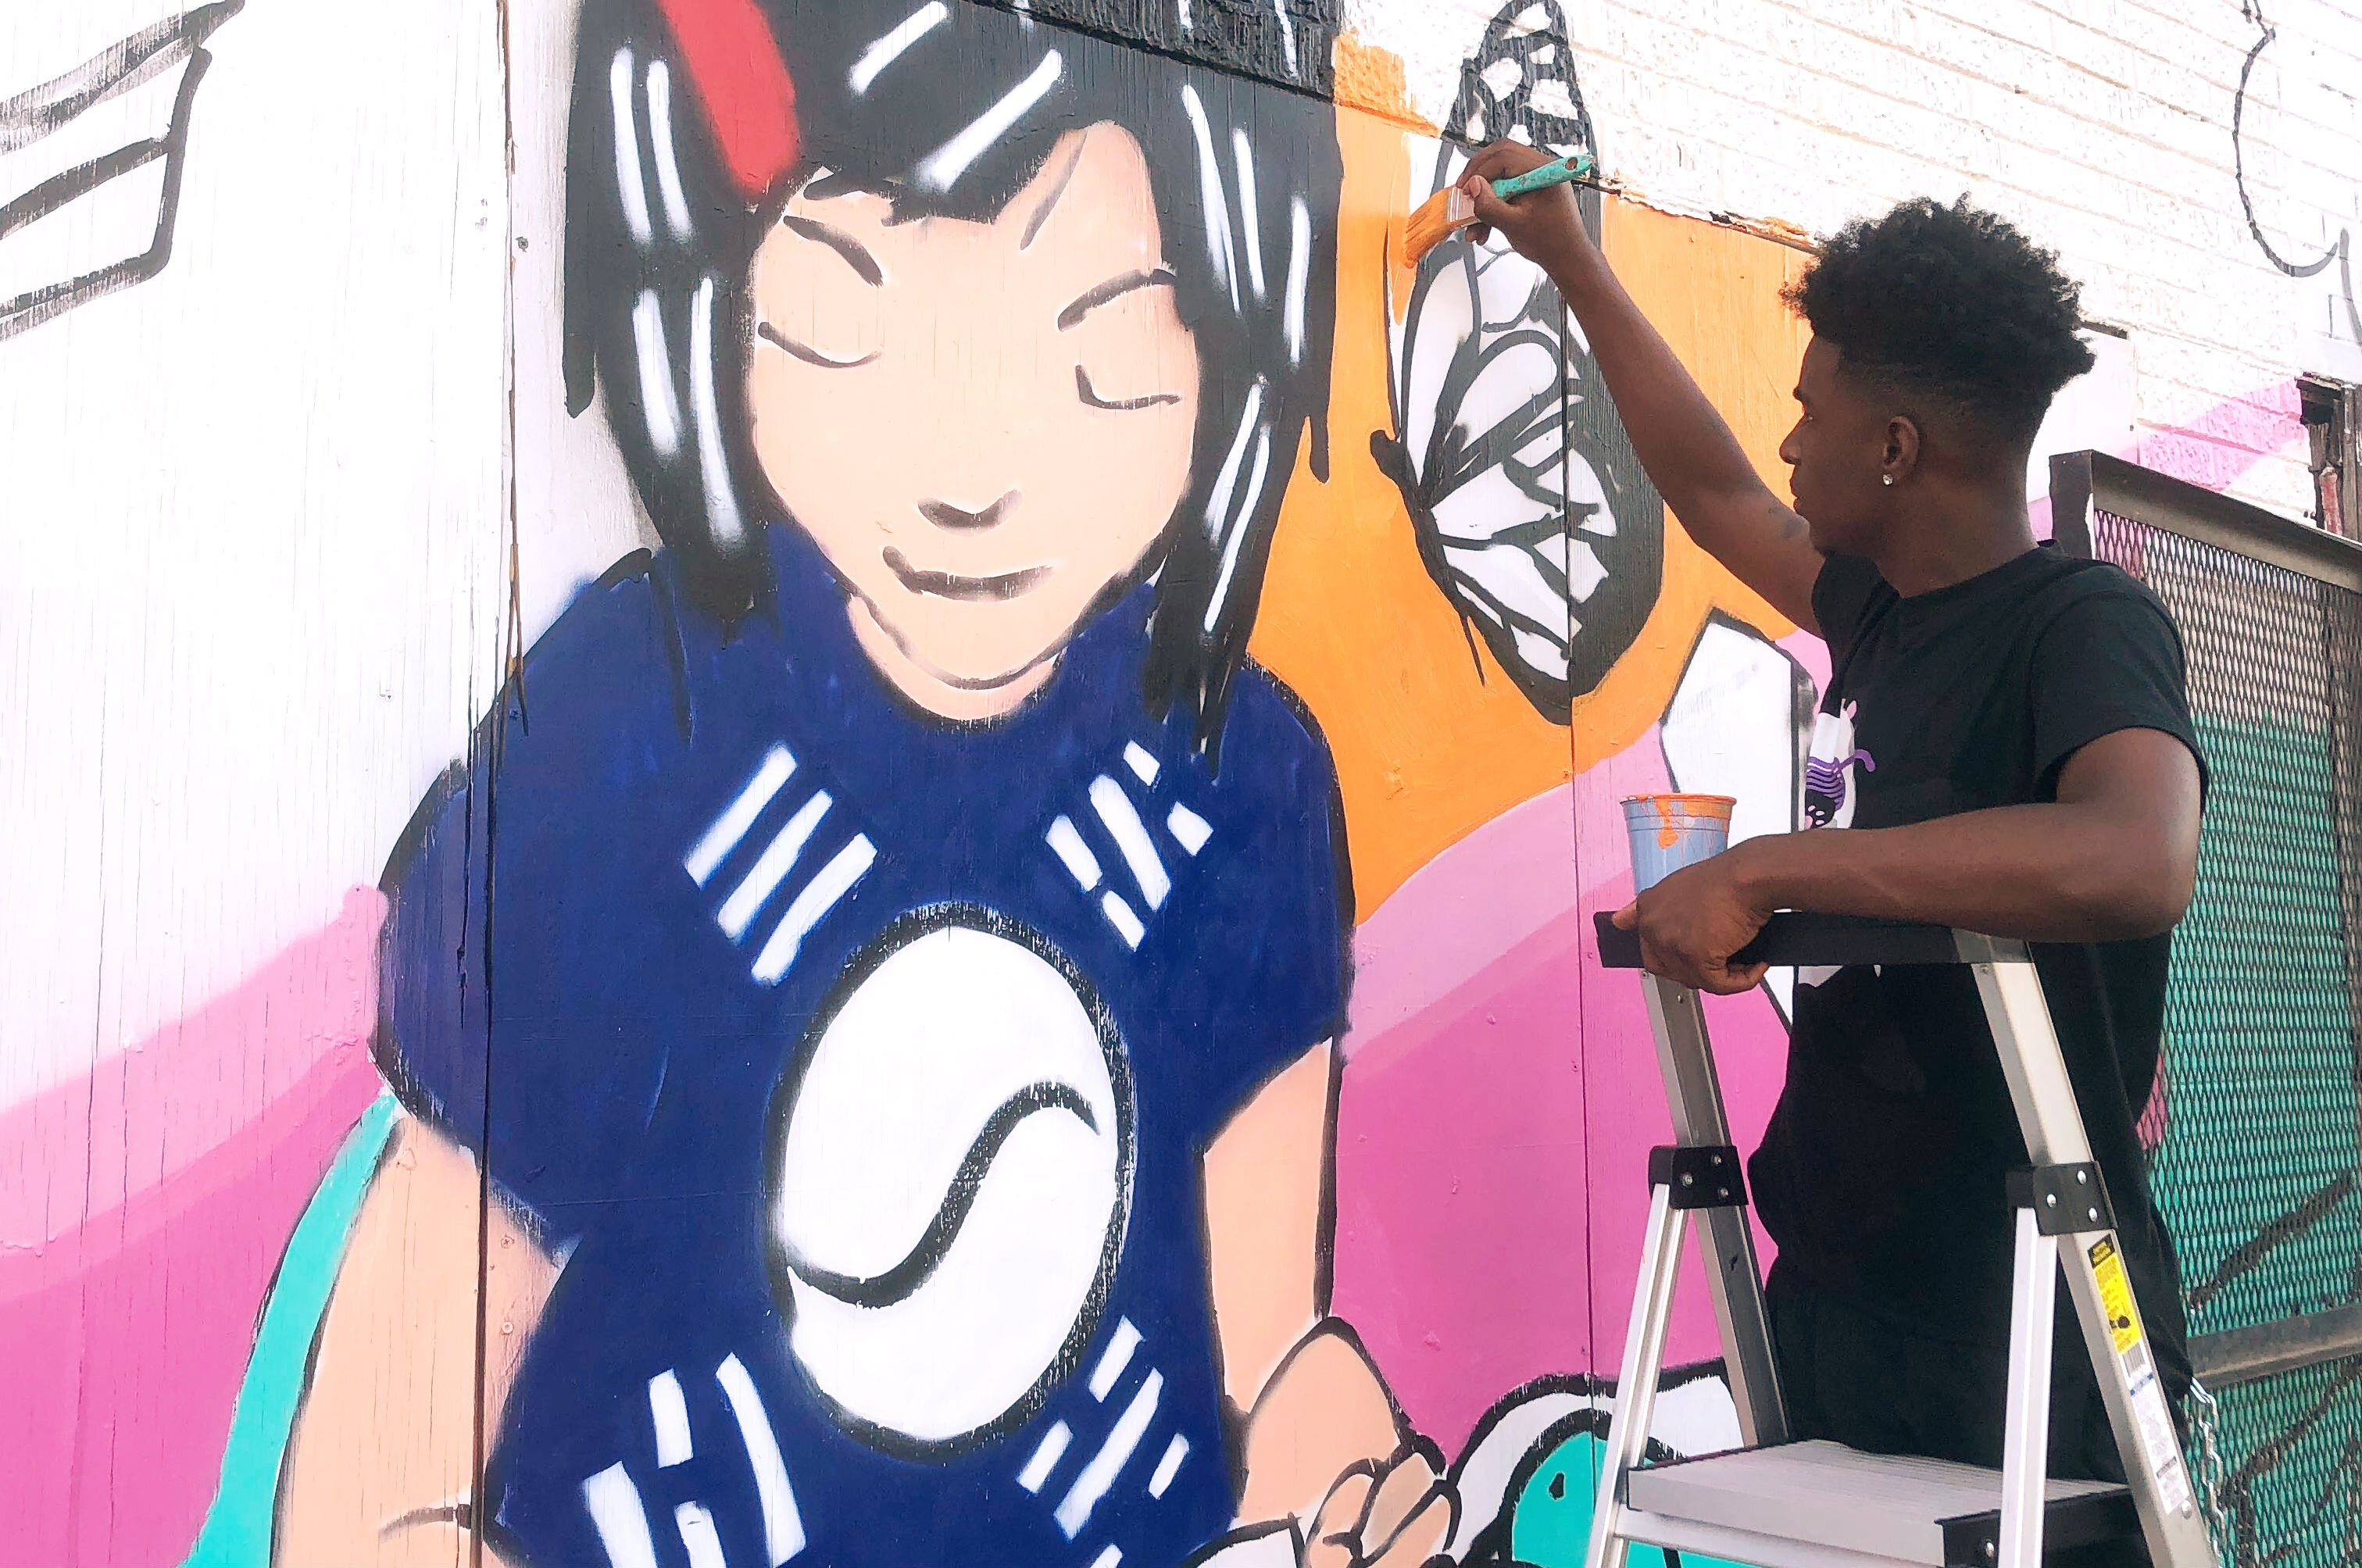 Donte Davis works on a section of the You's Grocery mural depicting store owner Ae An Sartain as a child when her father first opened the store. The artists based the mural on Sartain's memories and neighborhood history. (A.J. Dugger)